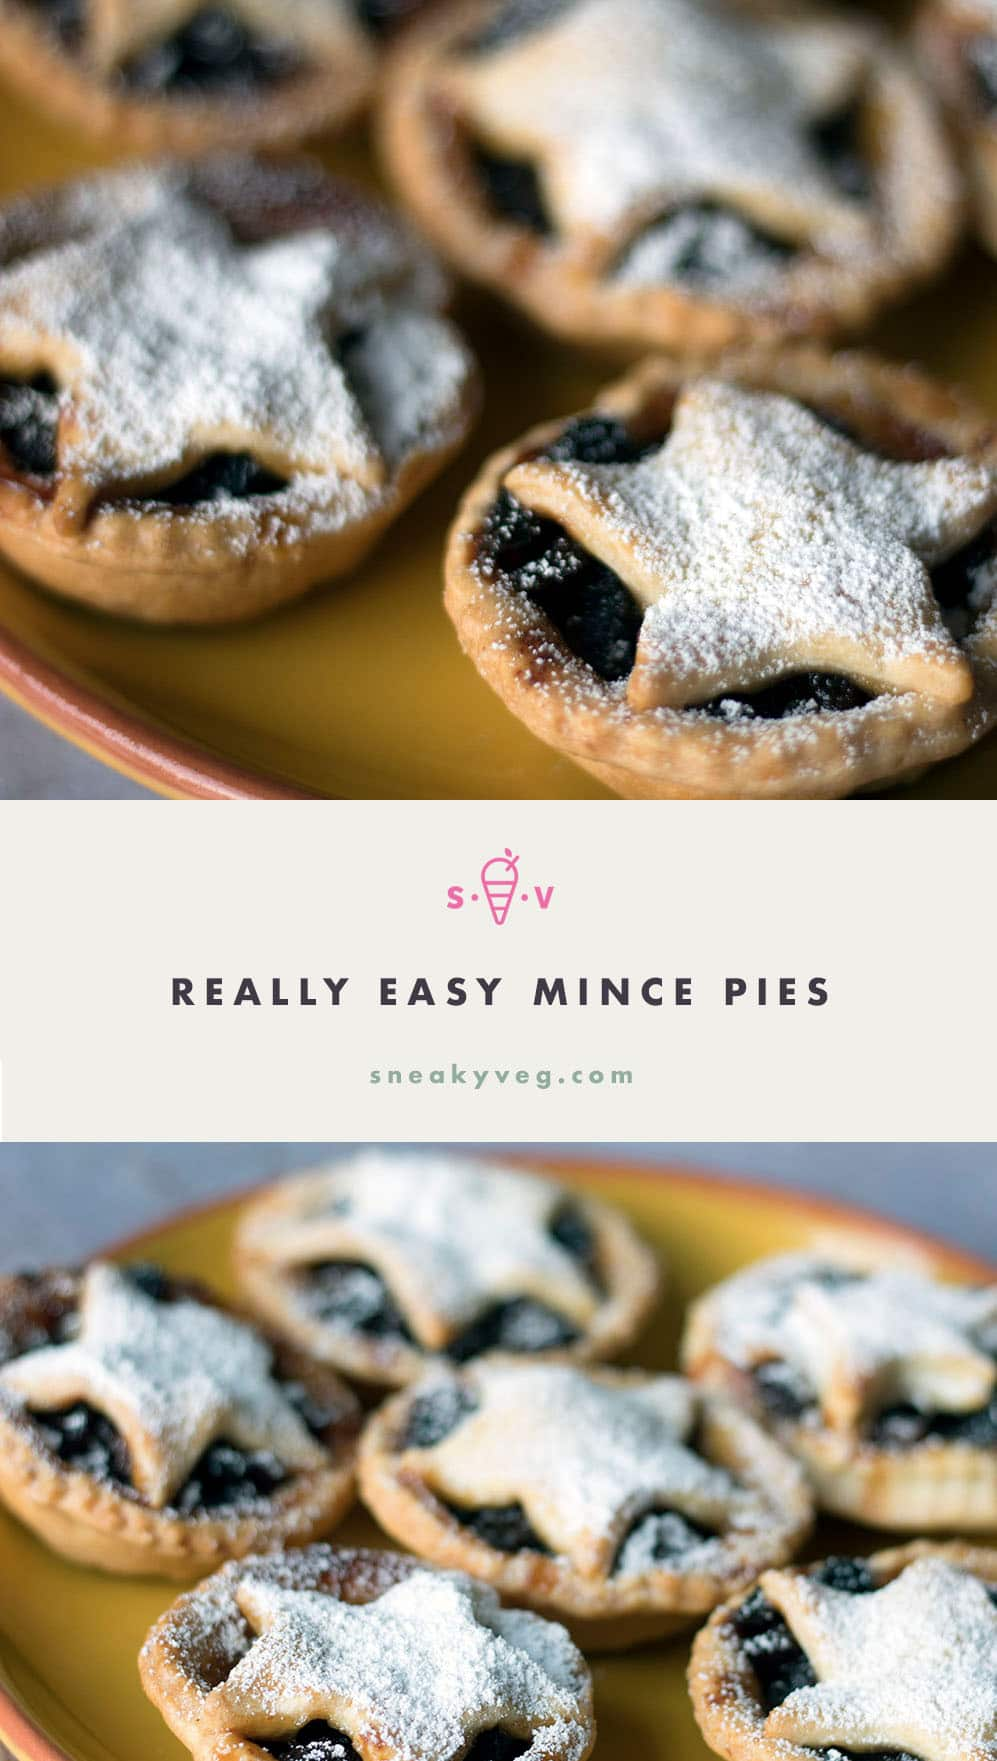 really easy mince pies